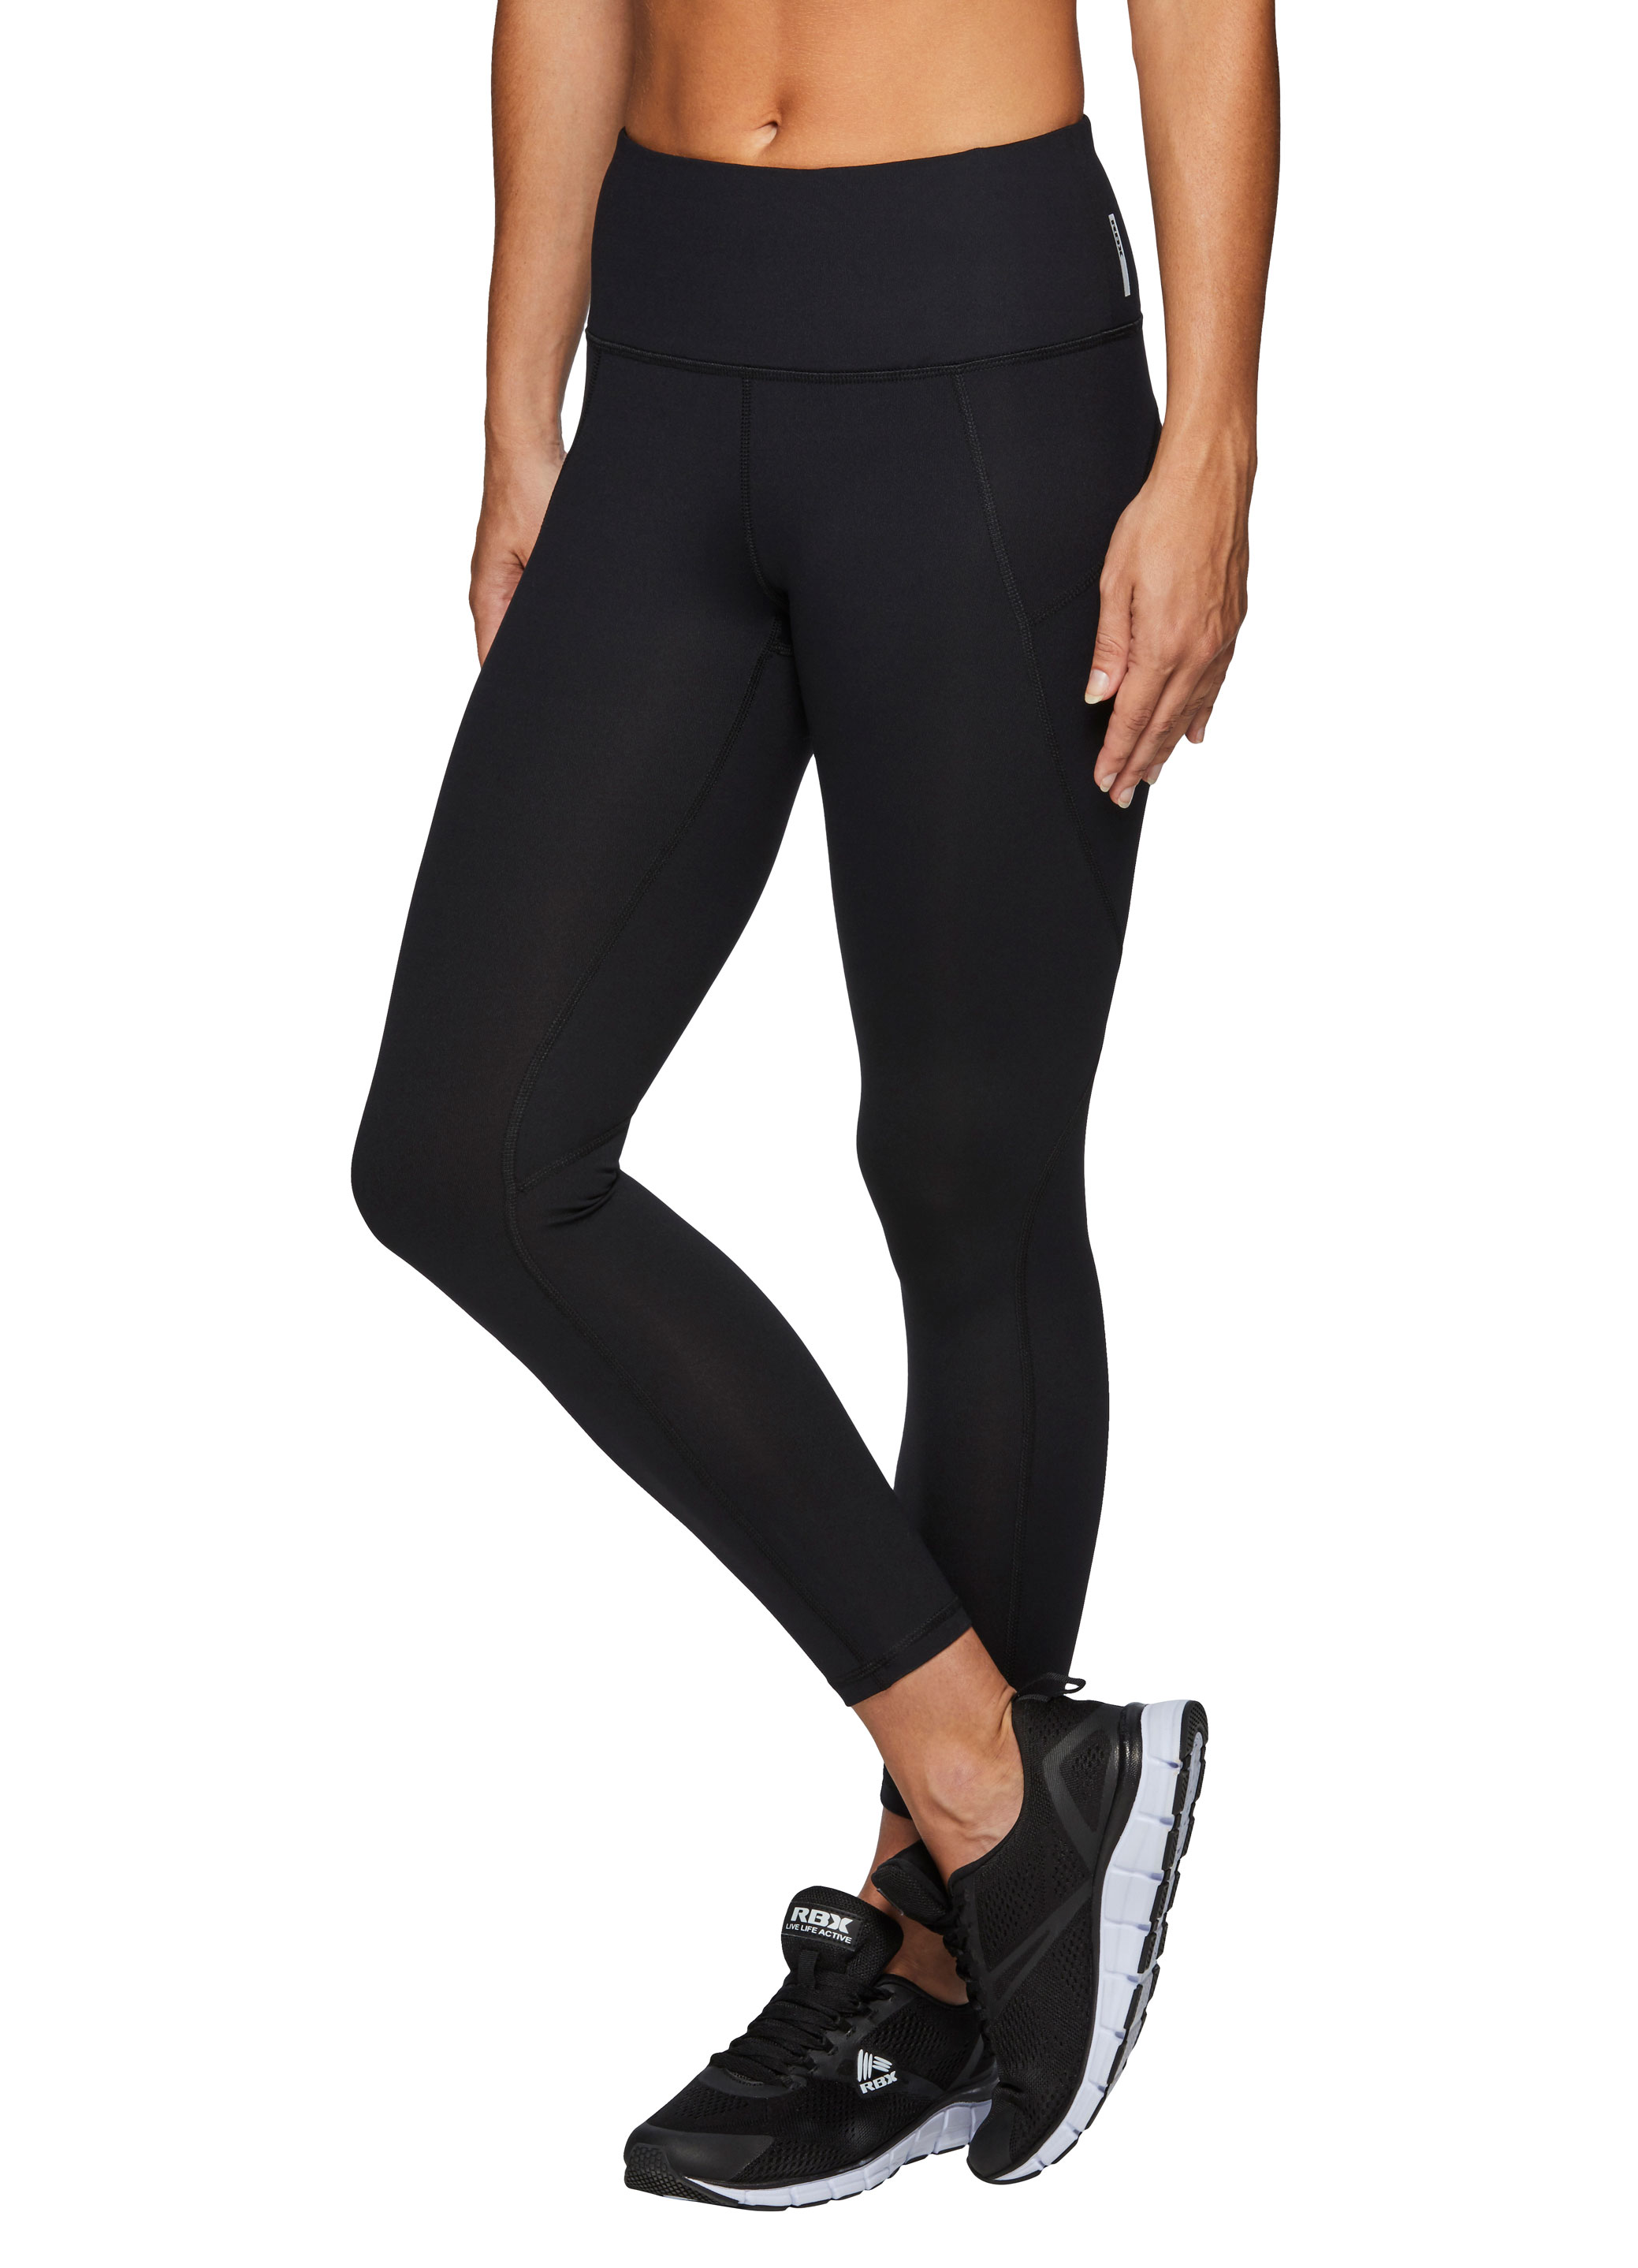 RBX Active Women's Power Hold Workout Yoga Leggings